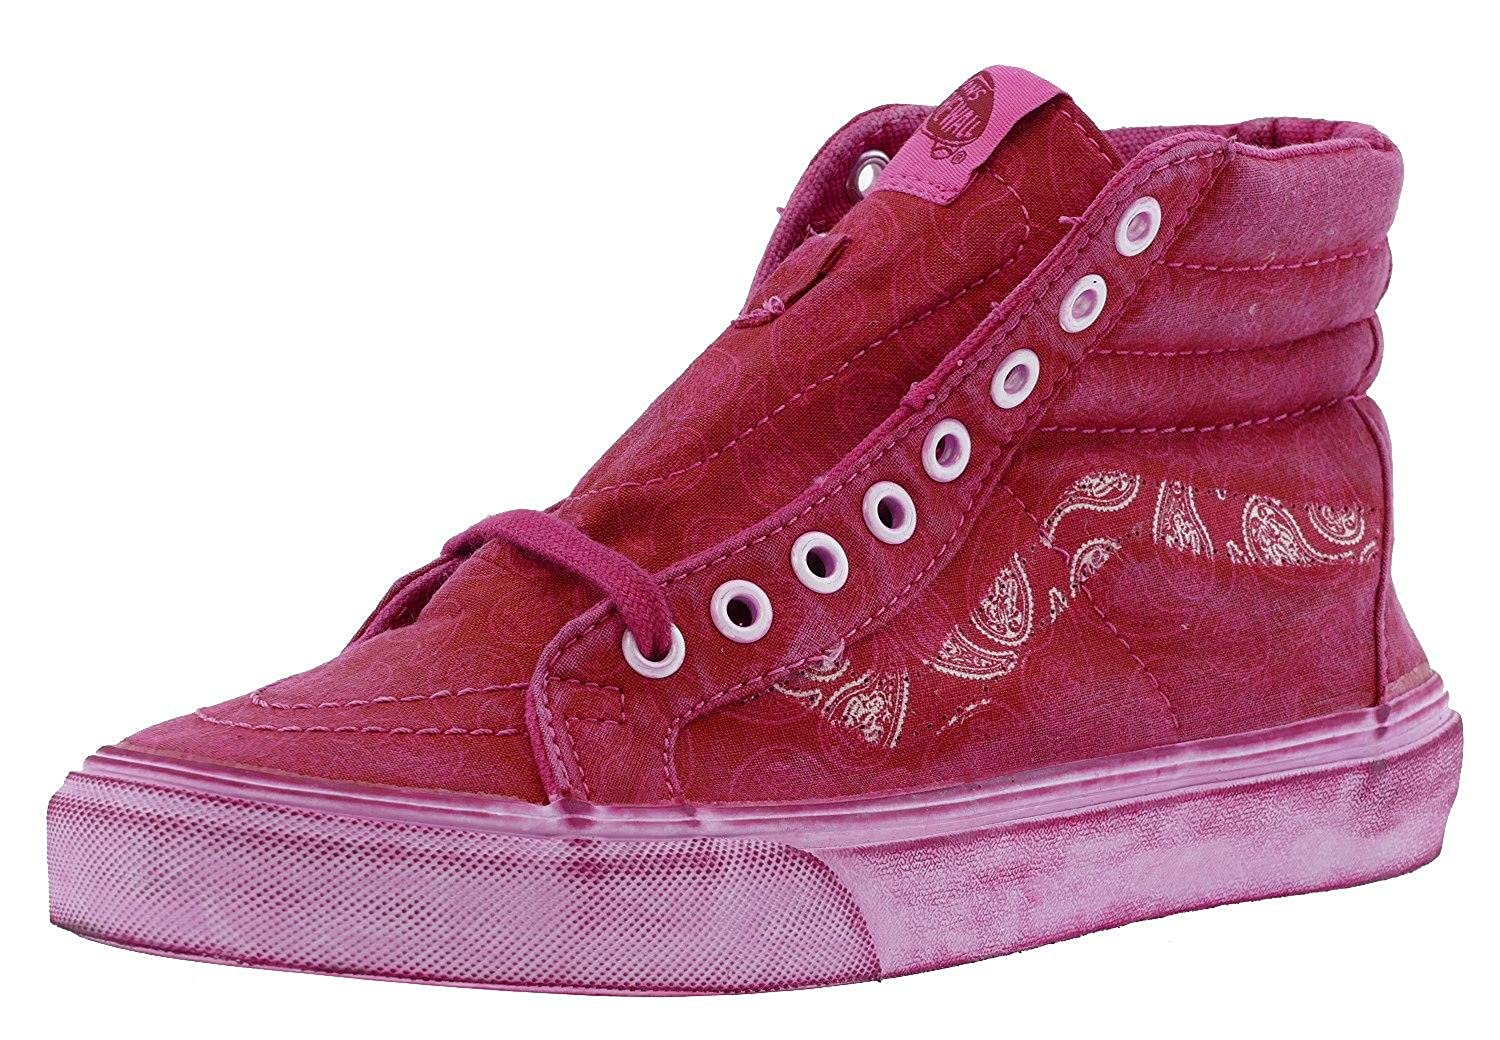 4bc666ec9a Vans SK8-HI Reissue + Mens Size 10 Overwash Paisley Red Canvas Skateboarding  Shoes (10)  Amazon.ca  Shoes   Handbags